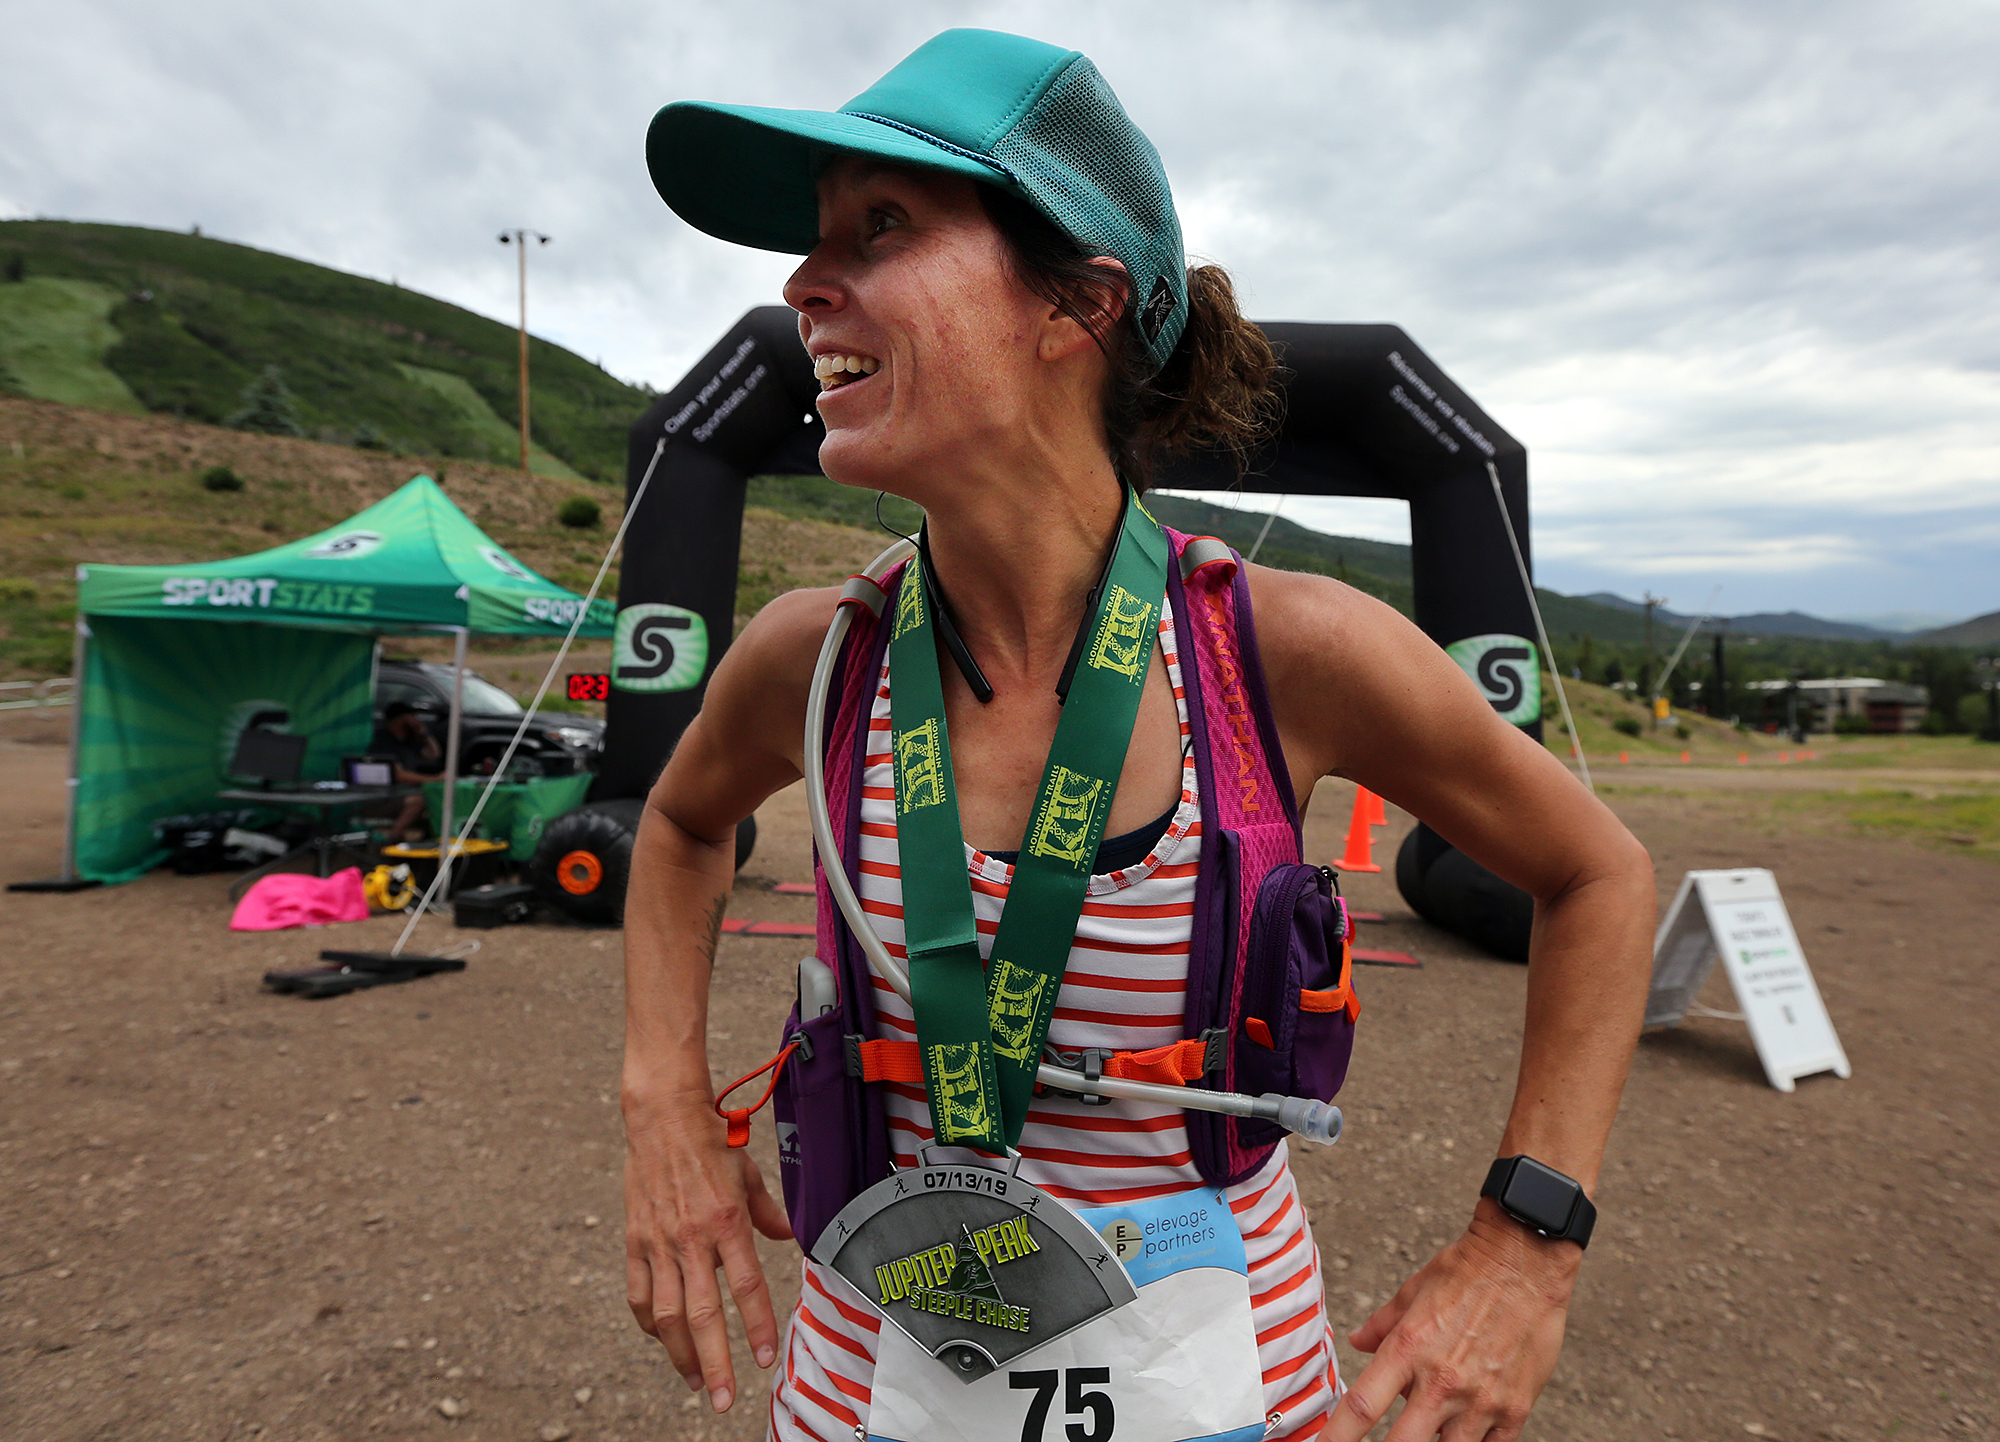 Venner and Gammon take home Triple Trail Challenge honors